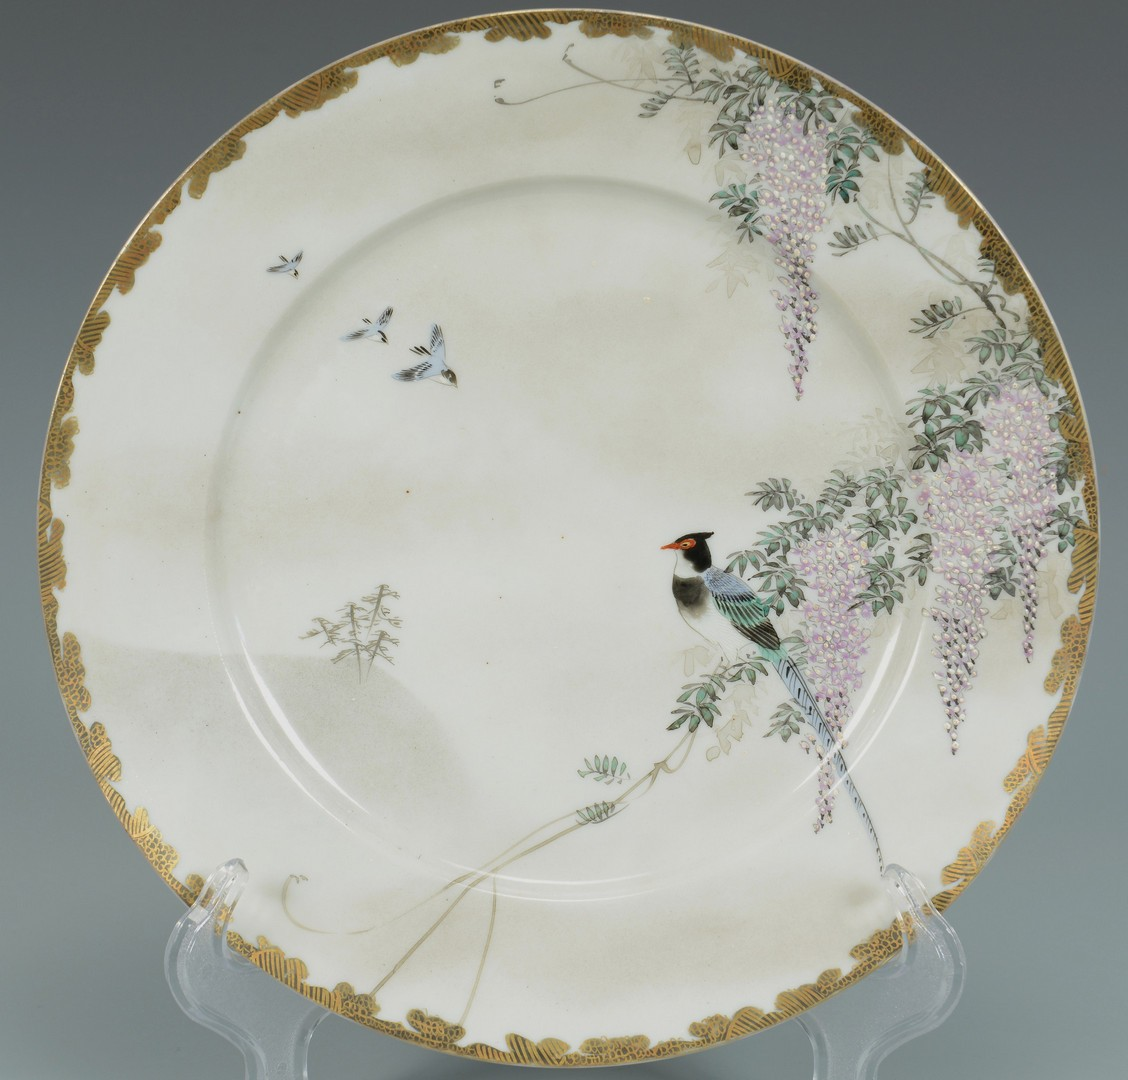 Lot 3383162: 19th c. Japanese Porcelain Set, Birds